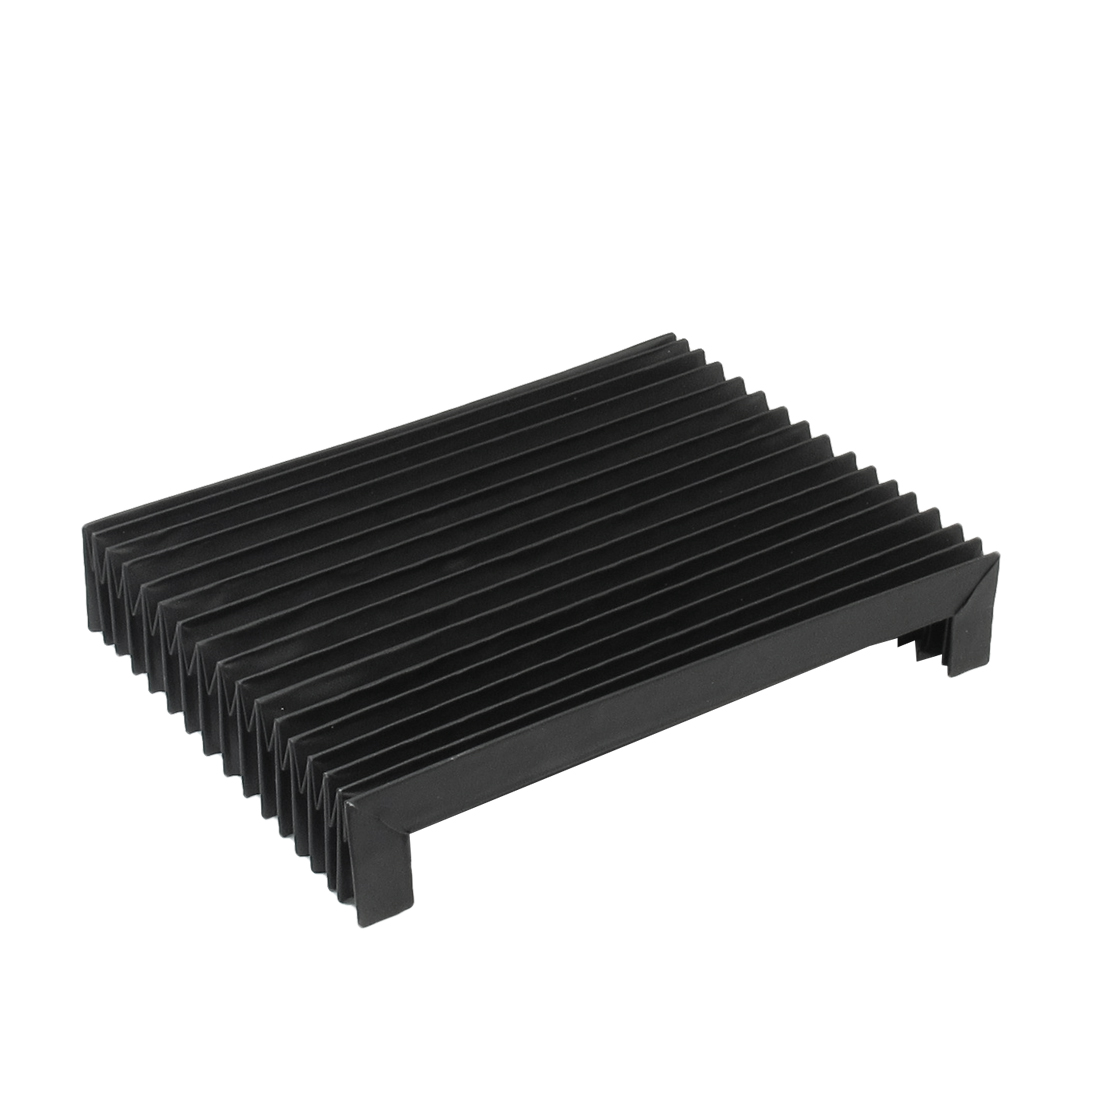 CNC Machine Flexible Accordion Shaped Black Plastic Dust Cover